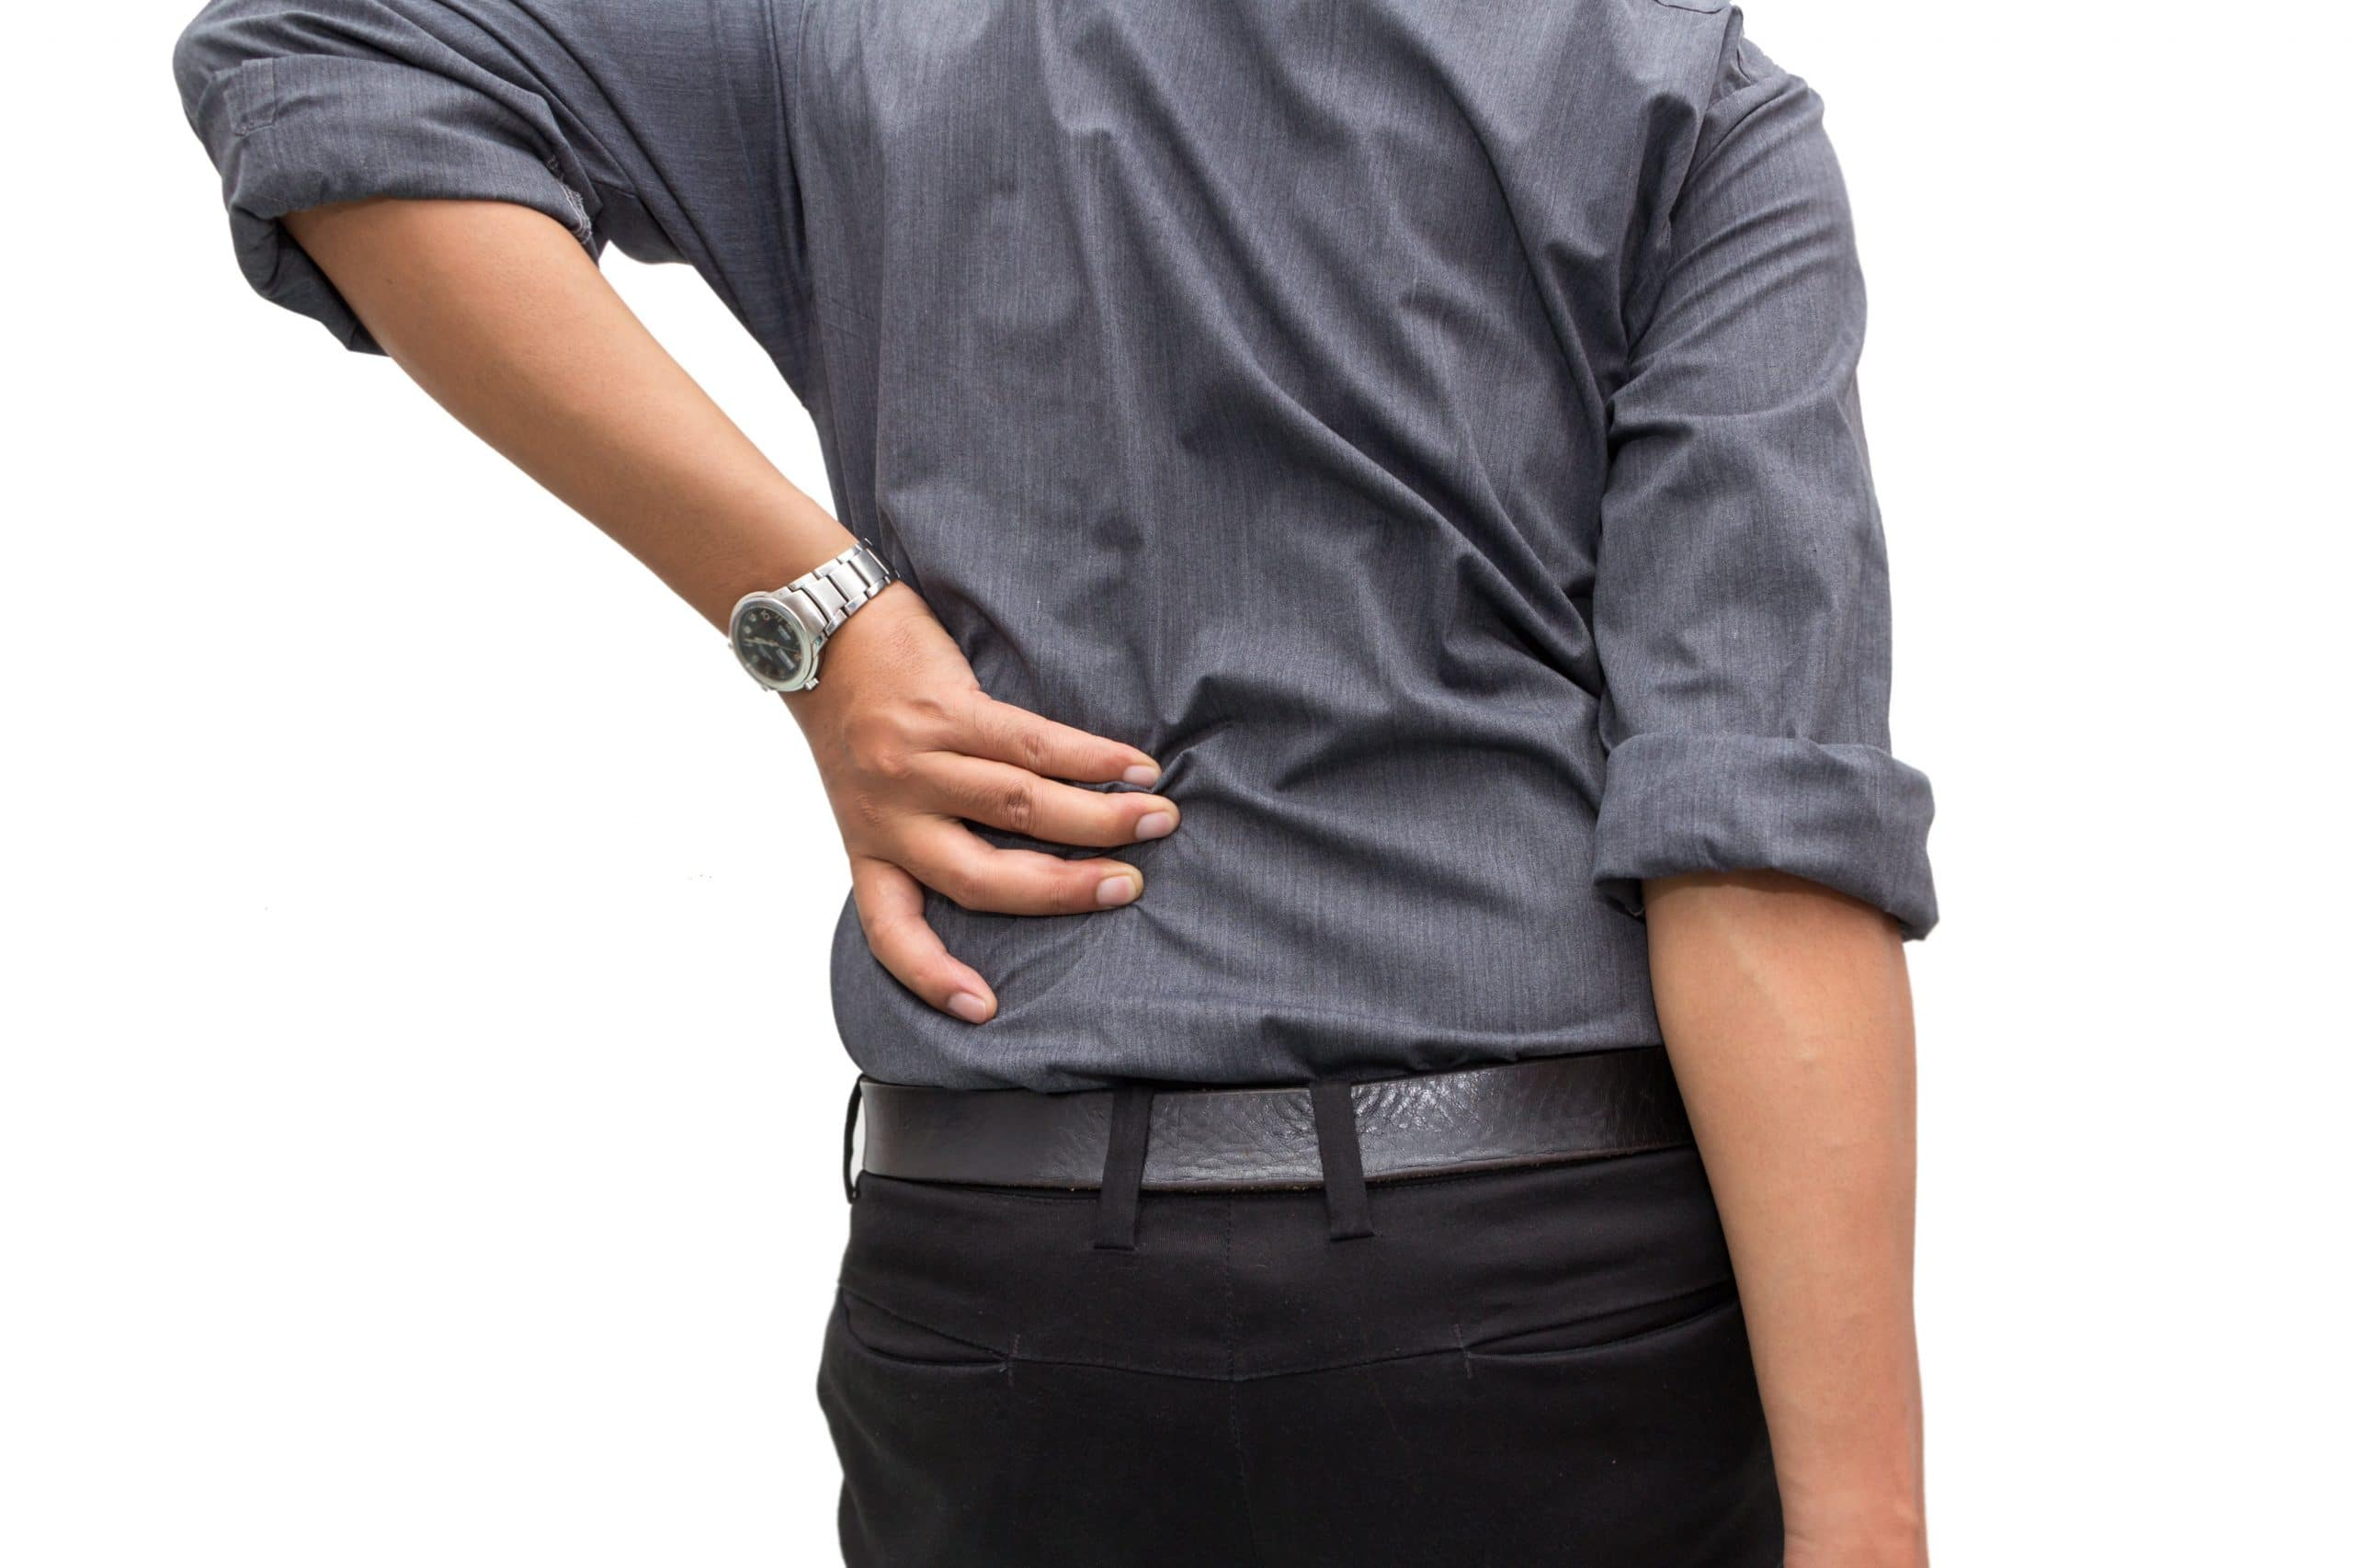 Back Pain Treatment Burbank Chiropractor